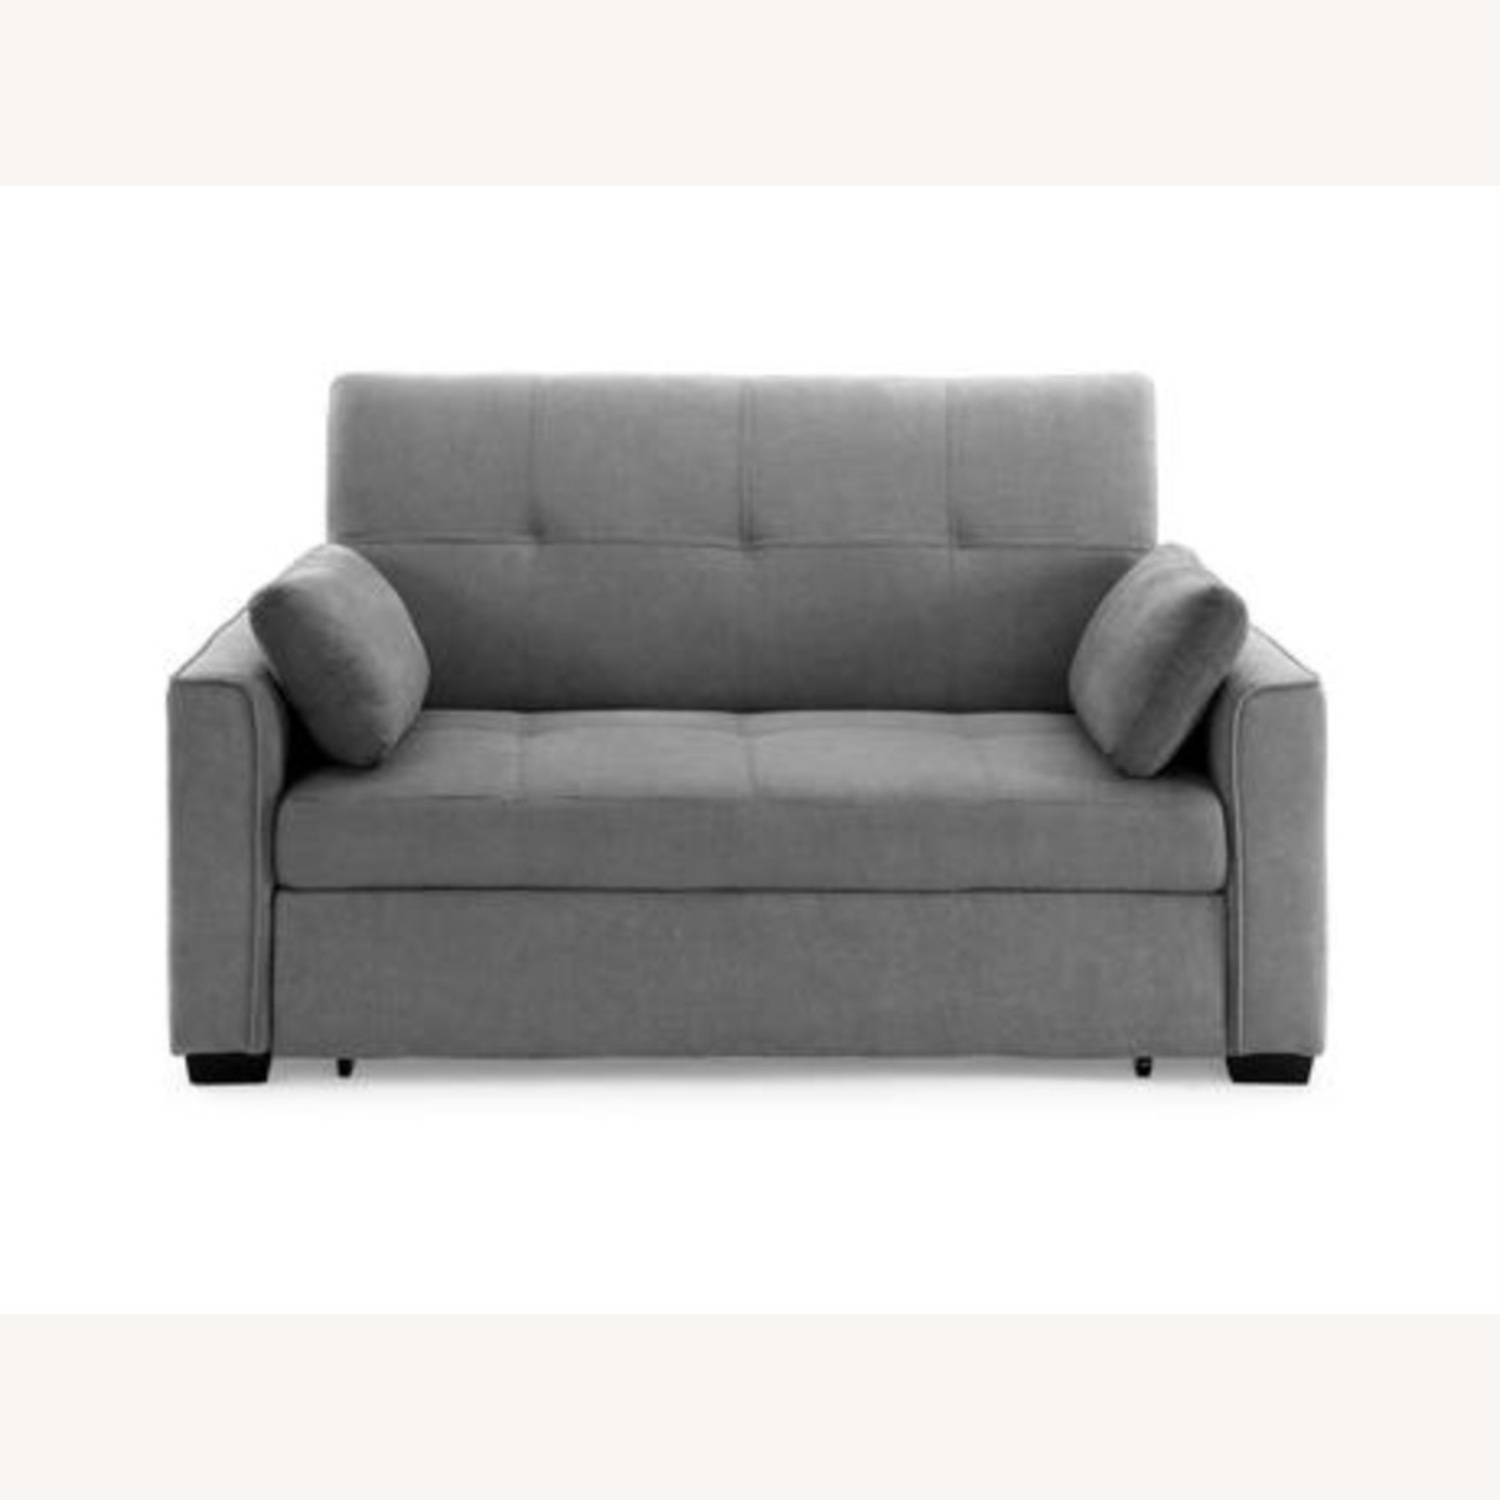 Light Grey Super Comfortable Sleeper Sofa - image-1